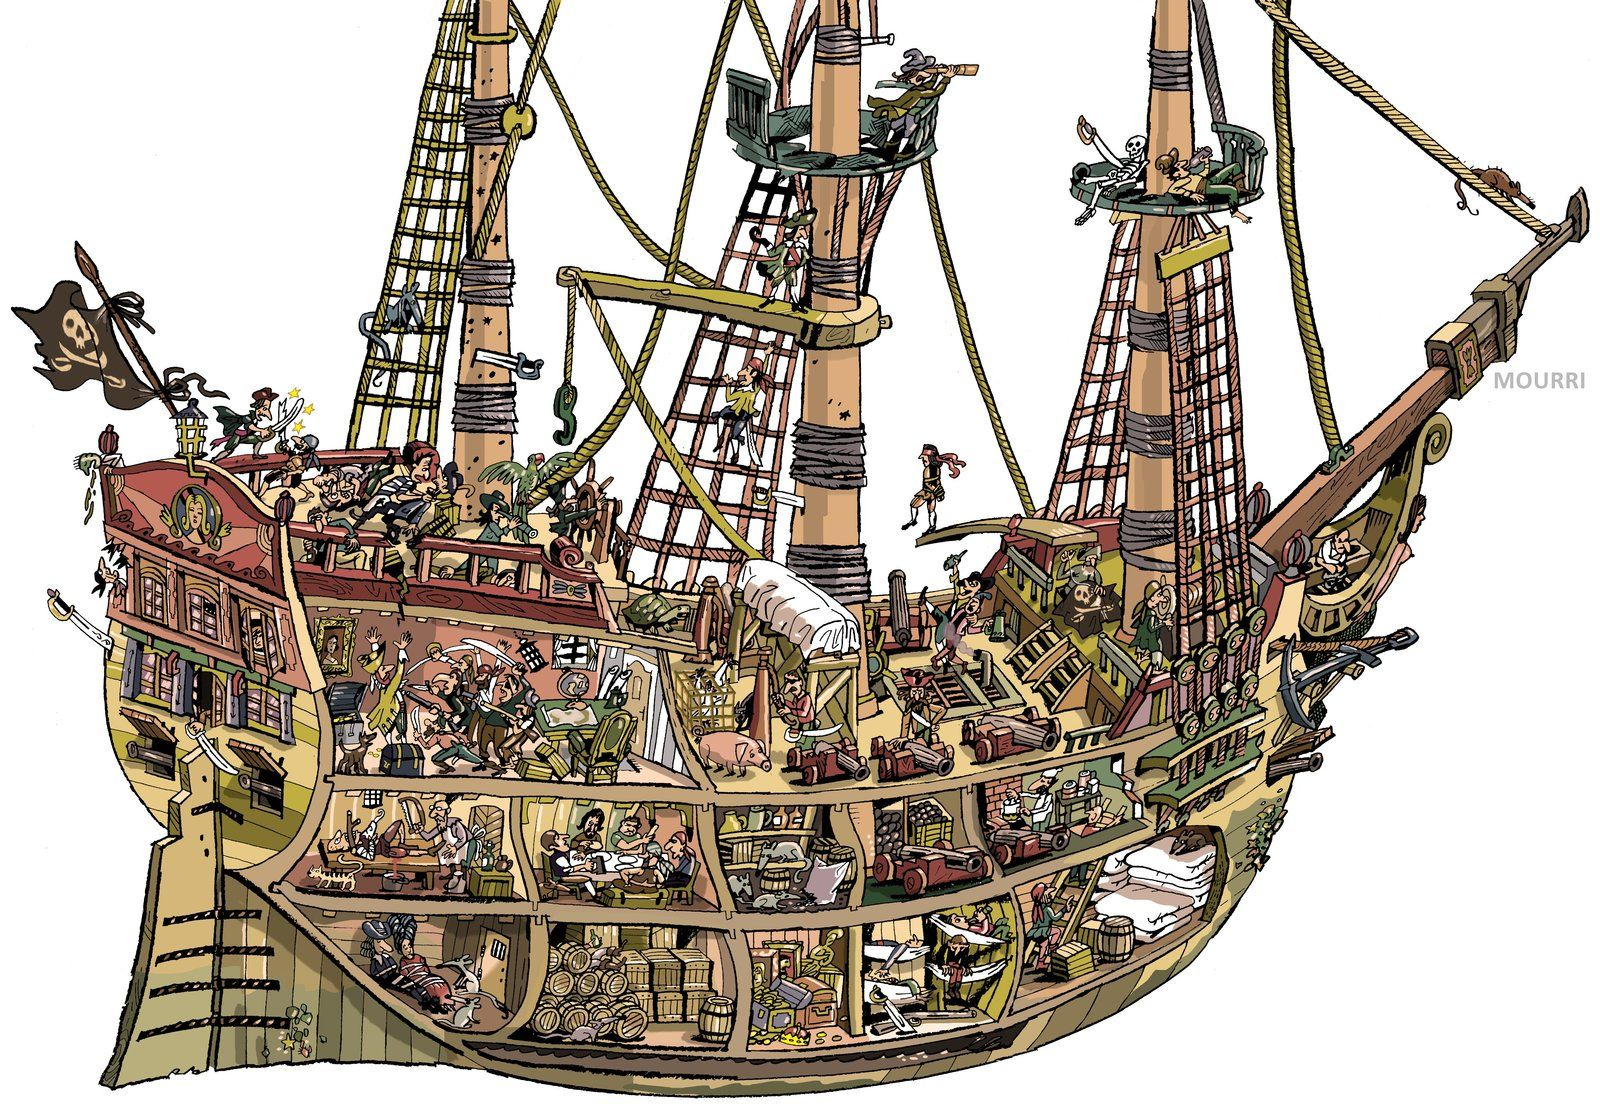 Old Pirate Ship by ~mourri | Best Fighting Sail | Pinterest ...